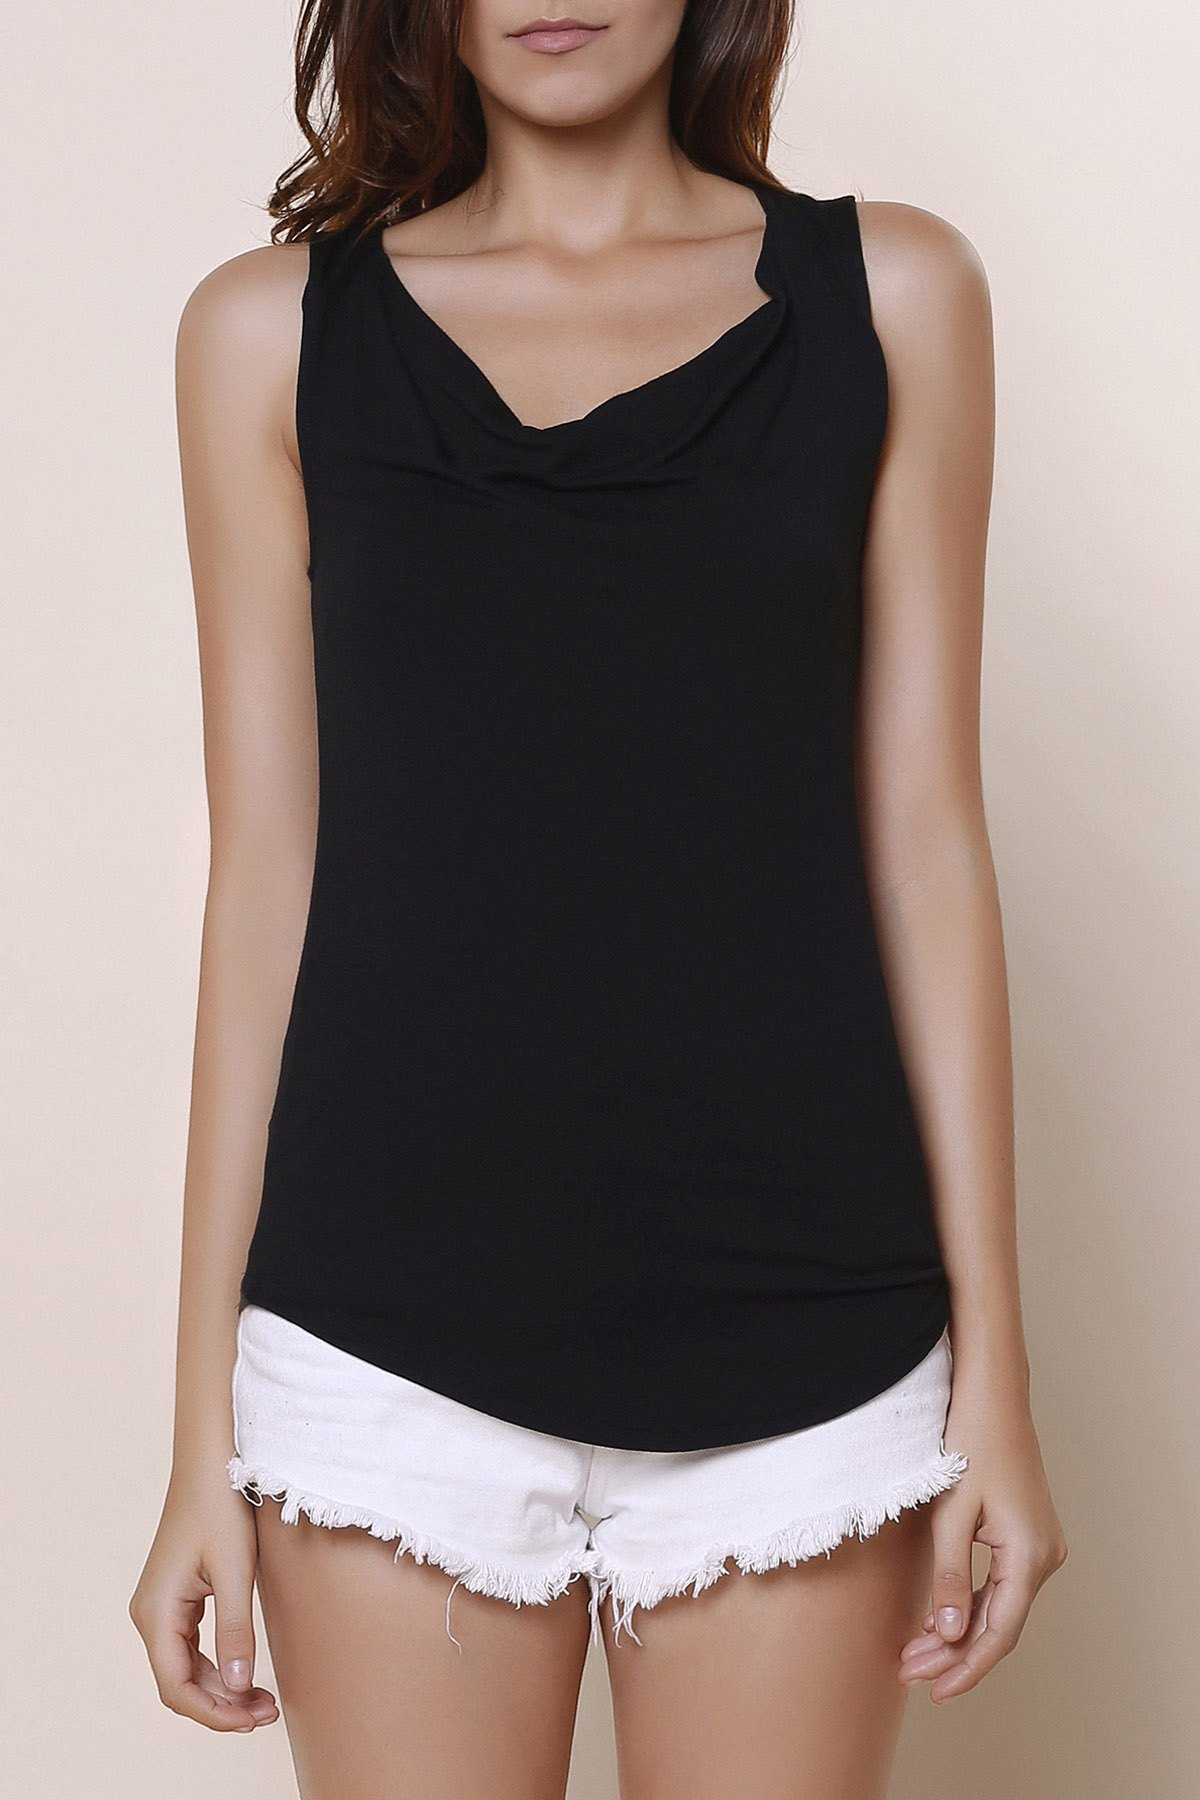 Brief Black Cowl Neck Sleeveless T-Shirt For Women - BLACK S